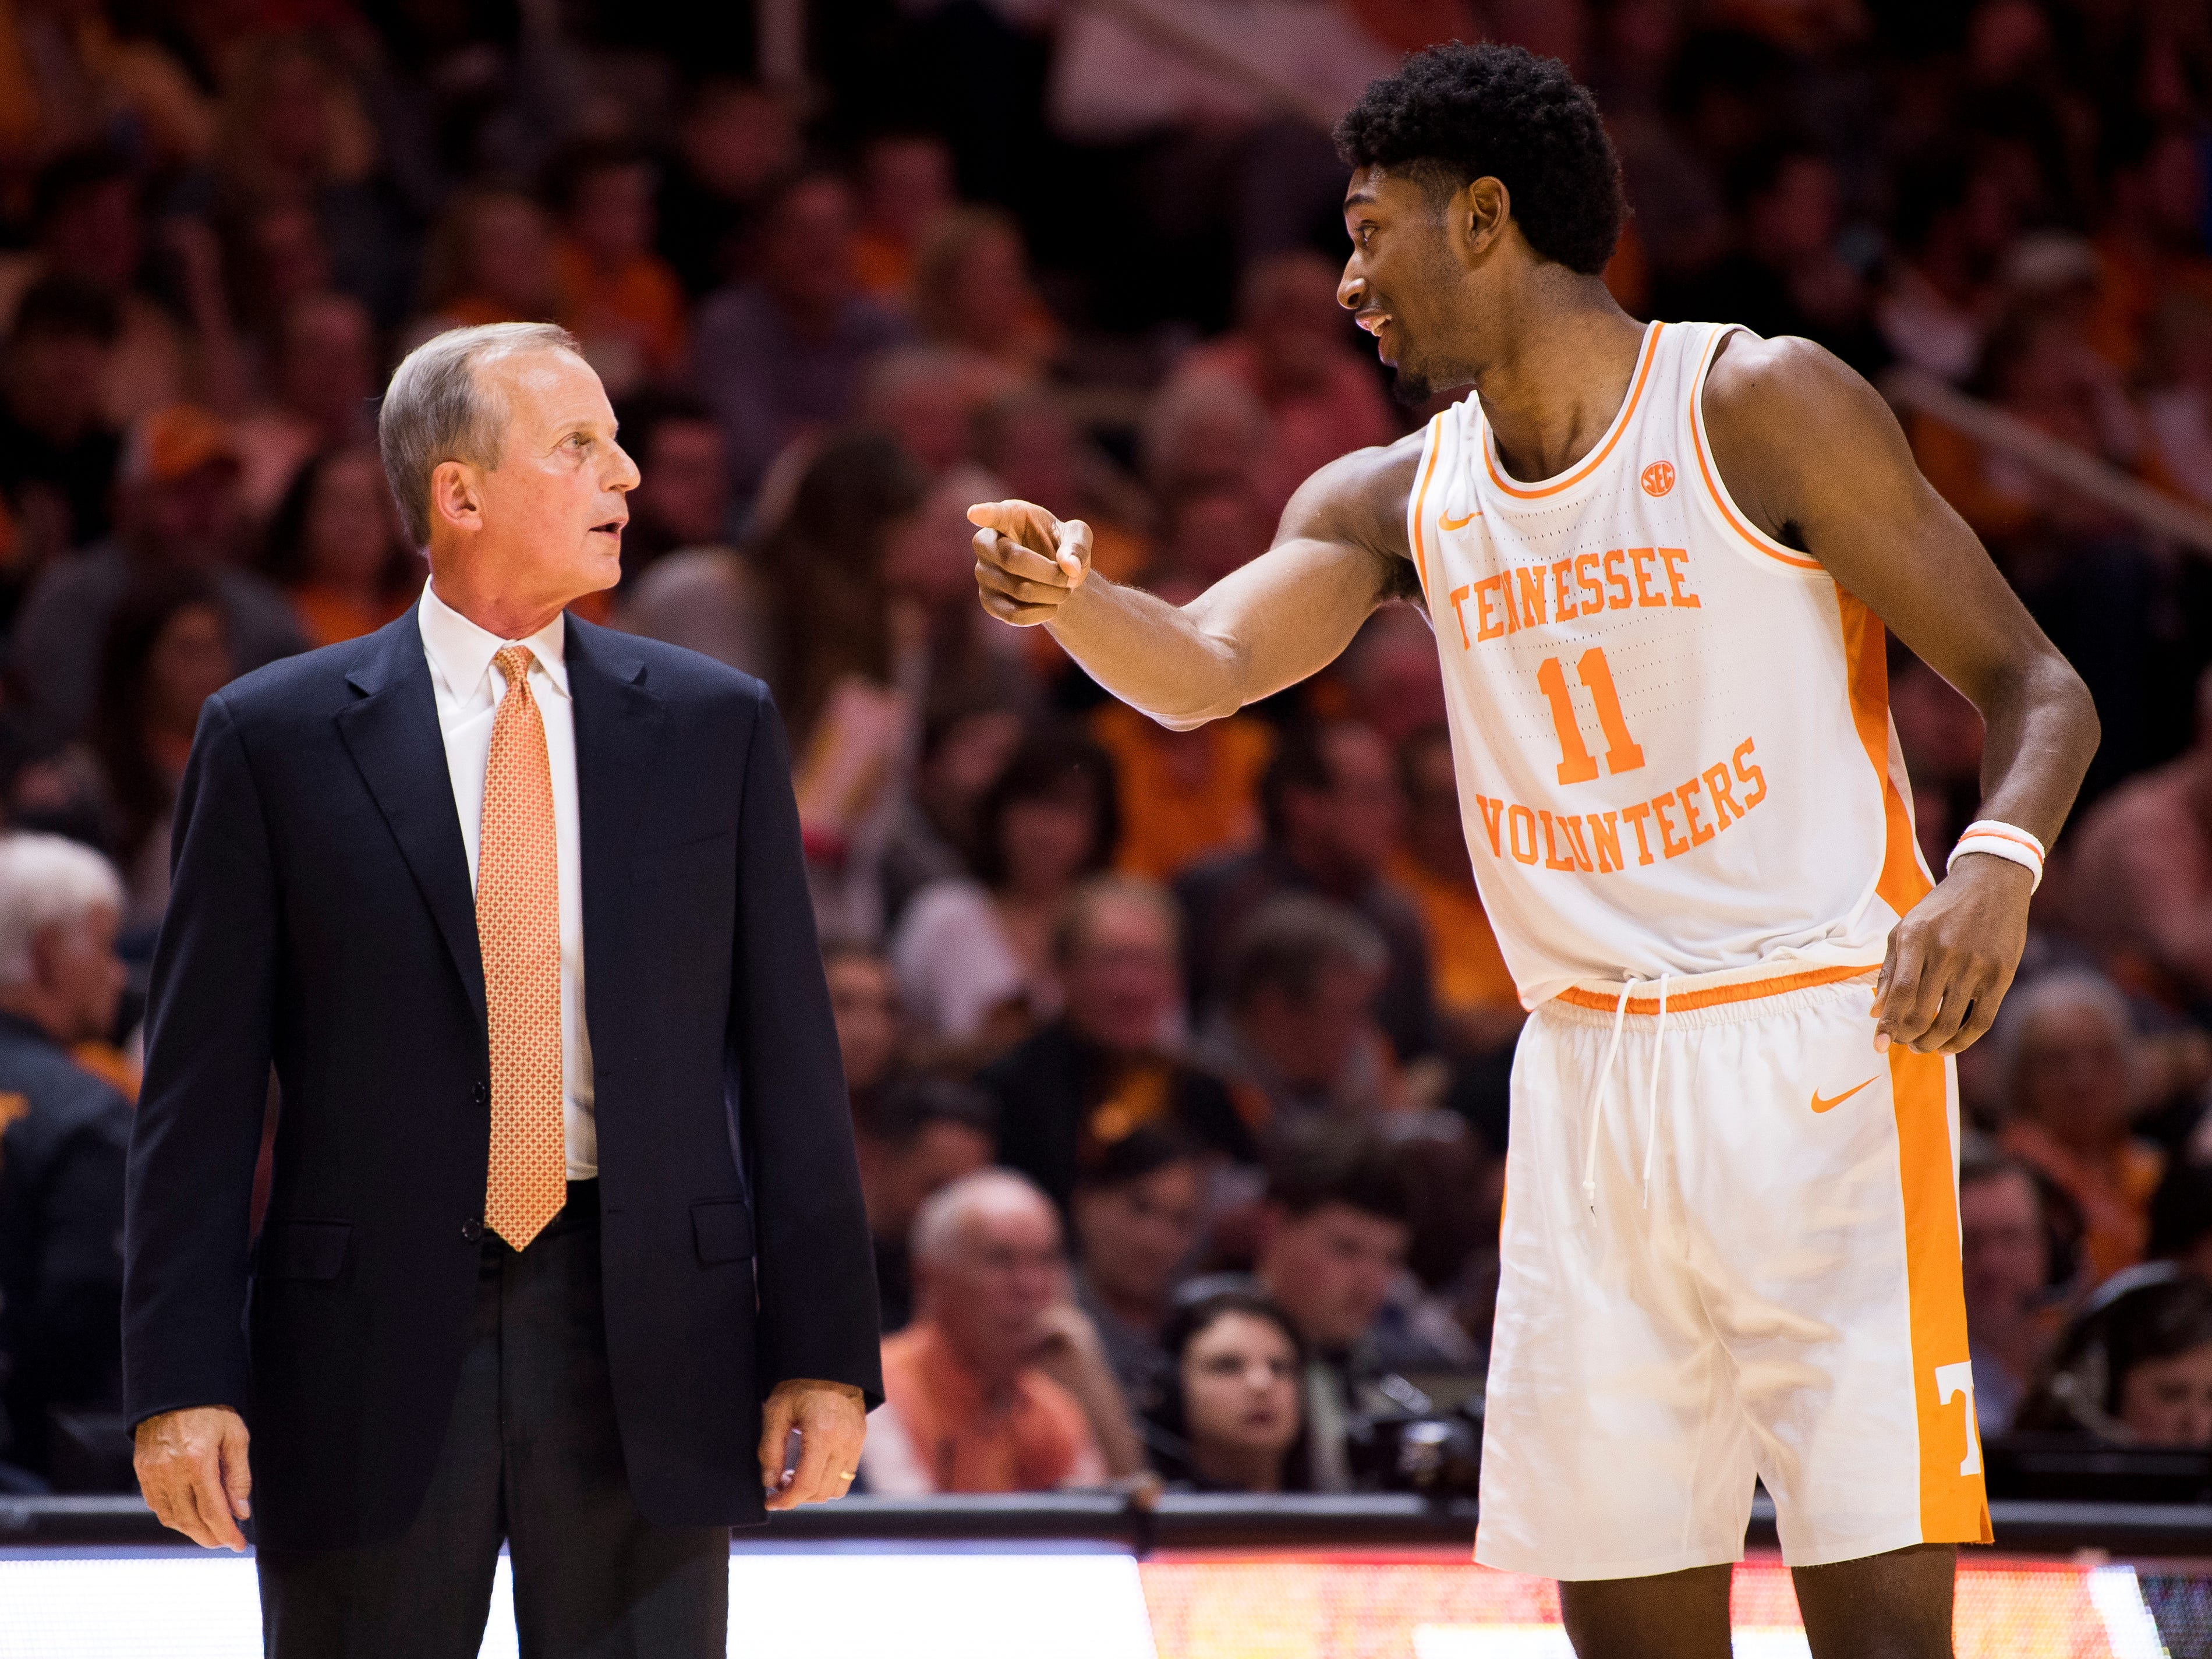 Tennessee Head Coach Rick Barnes speaks with Tennessee forward Kyle Alexander (11) during the second half of Tennessee's home SEC conference game against Alabama at Thompson-Boling Arena in Knoxville on Saturday, January 19, 2019.